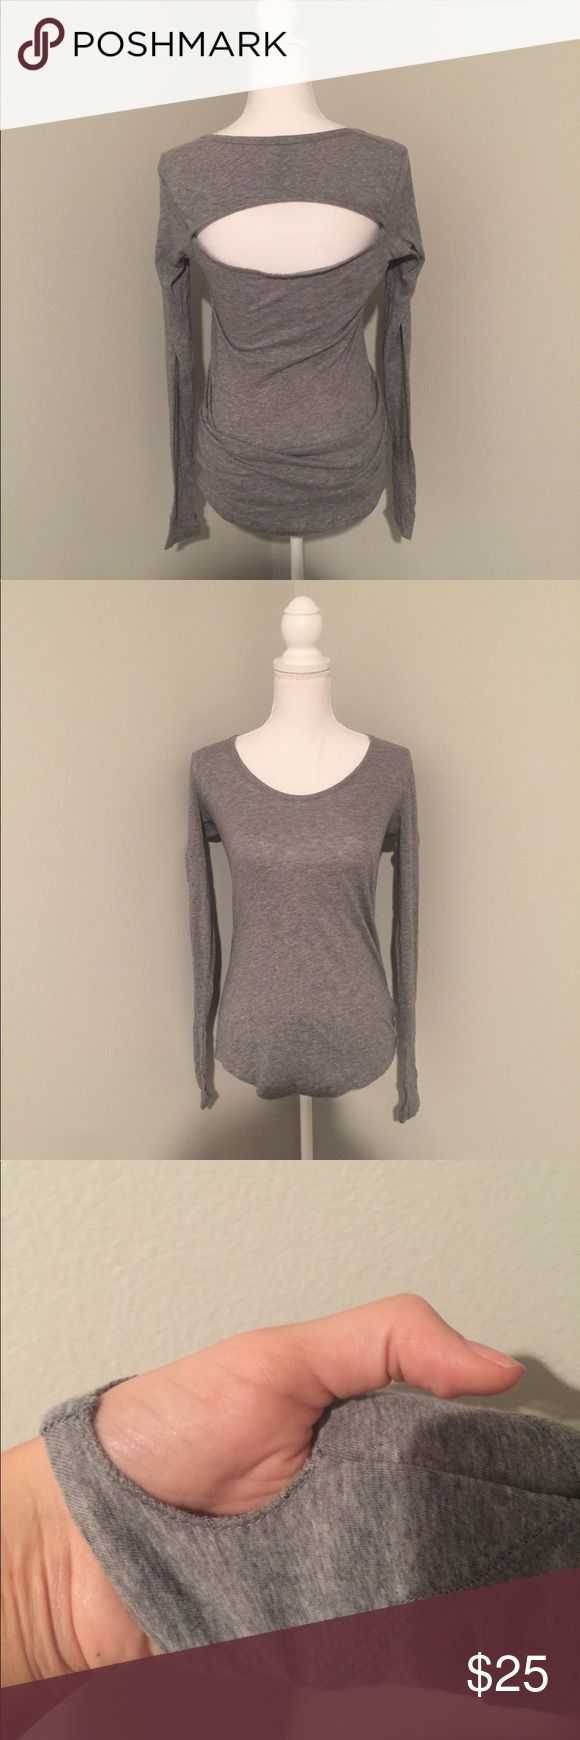 BOBI Gray top with back cut out and thumb holes NWOT. High quality comfy top! Bought It for the gym , but never worn it. Has thumb holes and the back is really cute . Leggings are in separate listing .retails at $70, this is a steal!!!! 😁😁😁 bobi Tops Tees - Long Sleeve